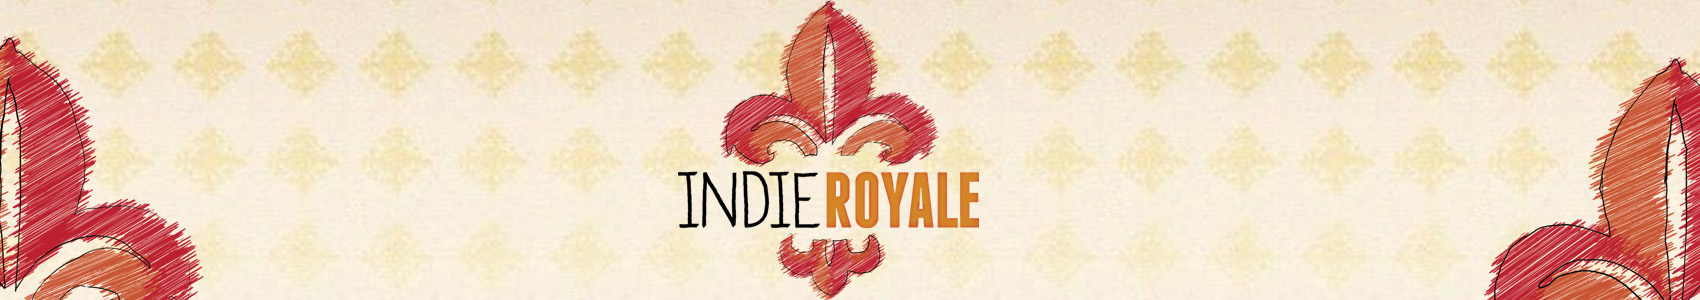 indie-royale-headi-hd